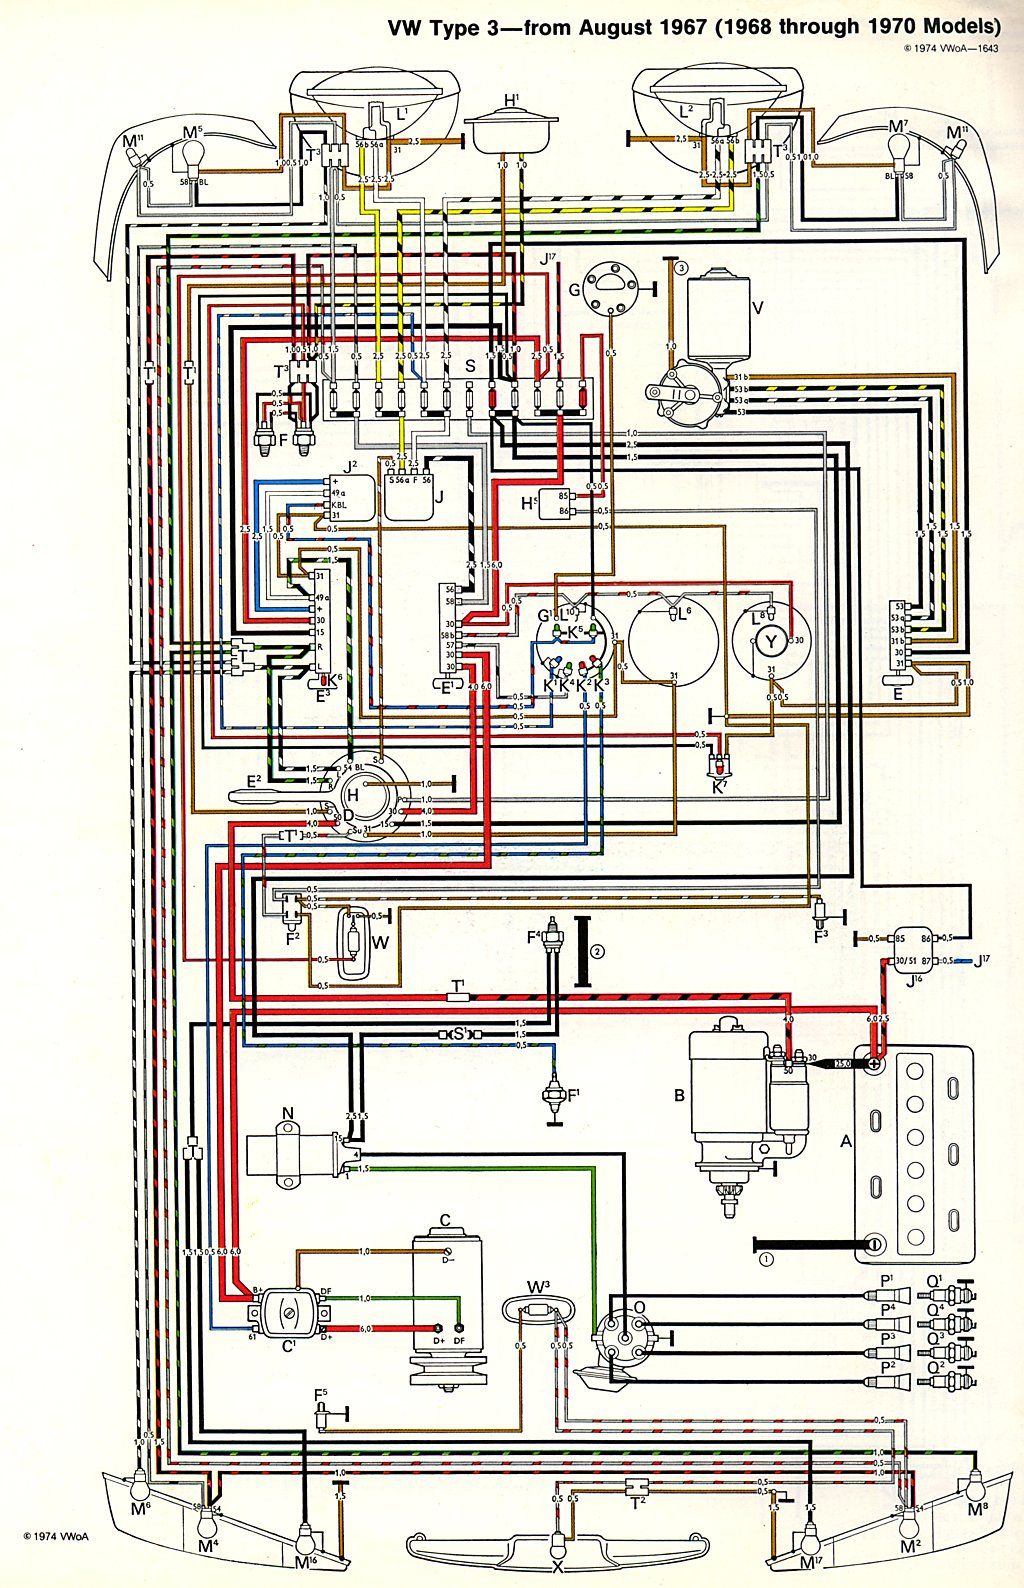 1969 Vw Beetle Wiring Diagram